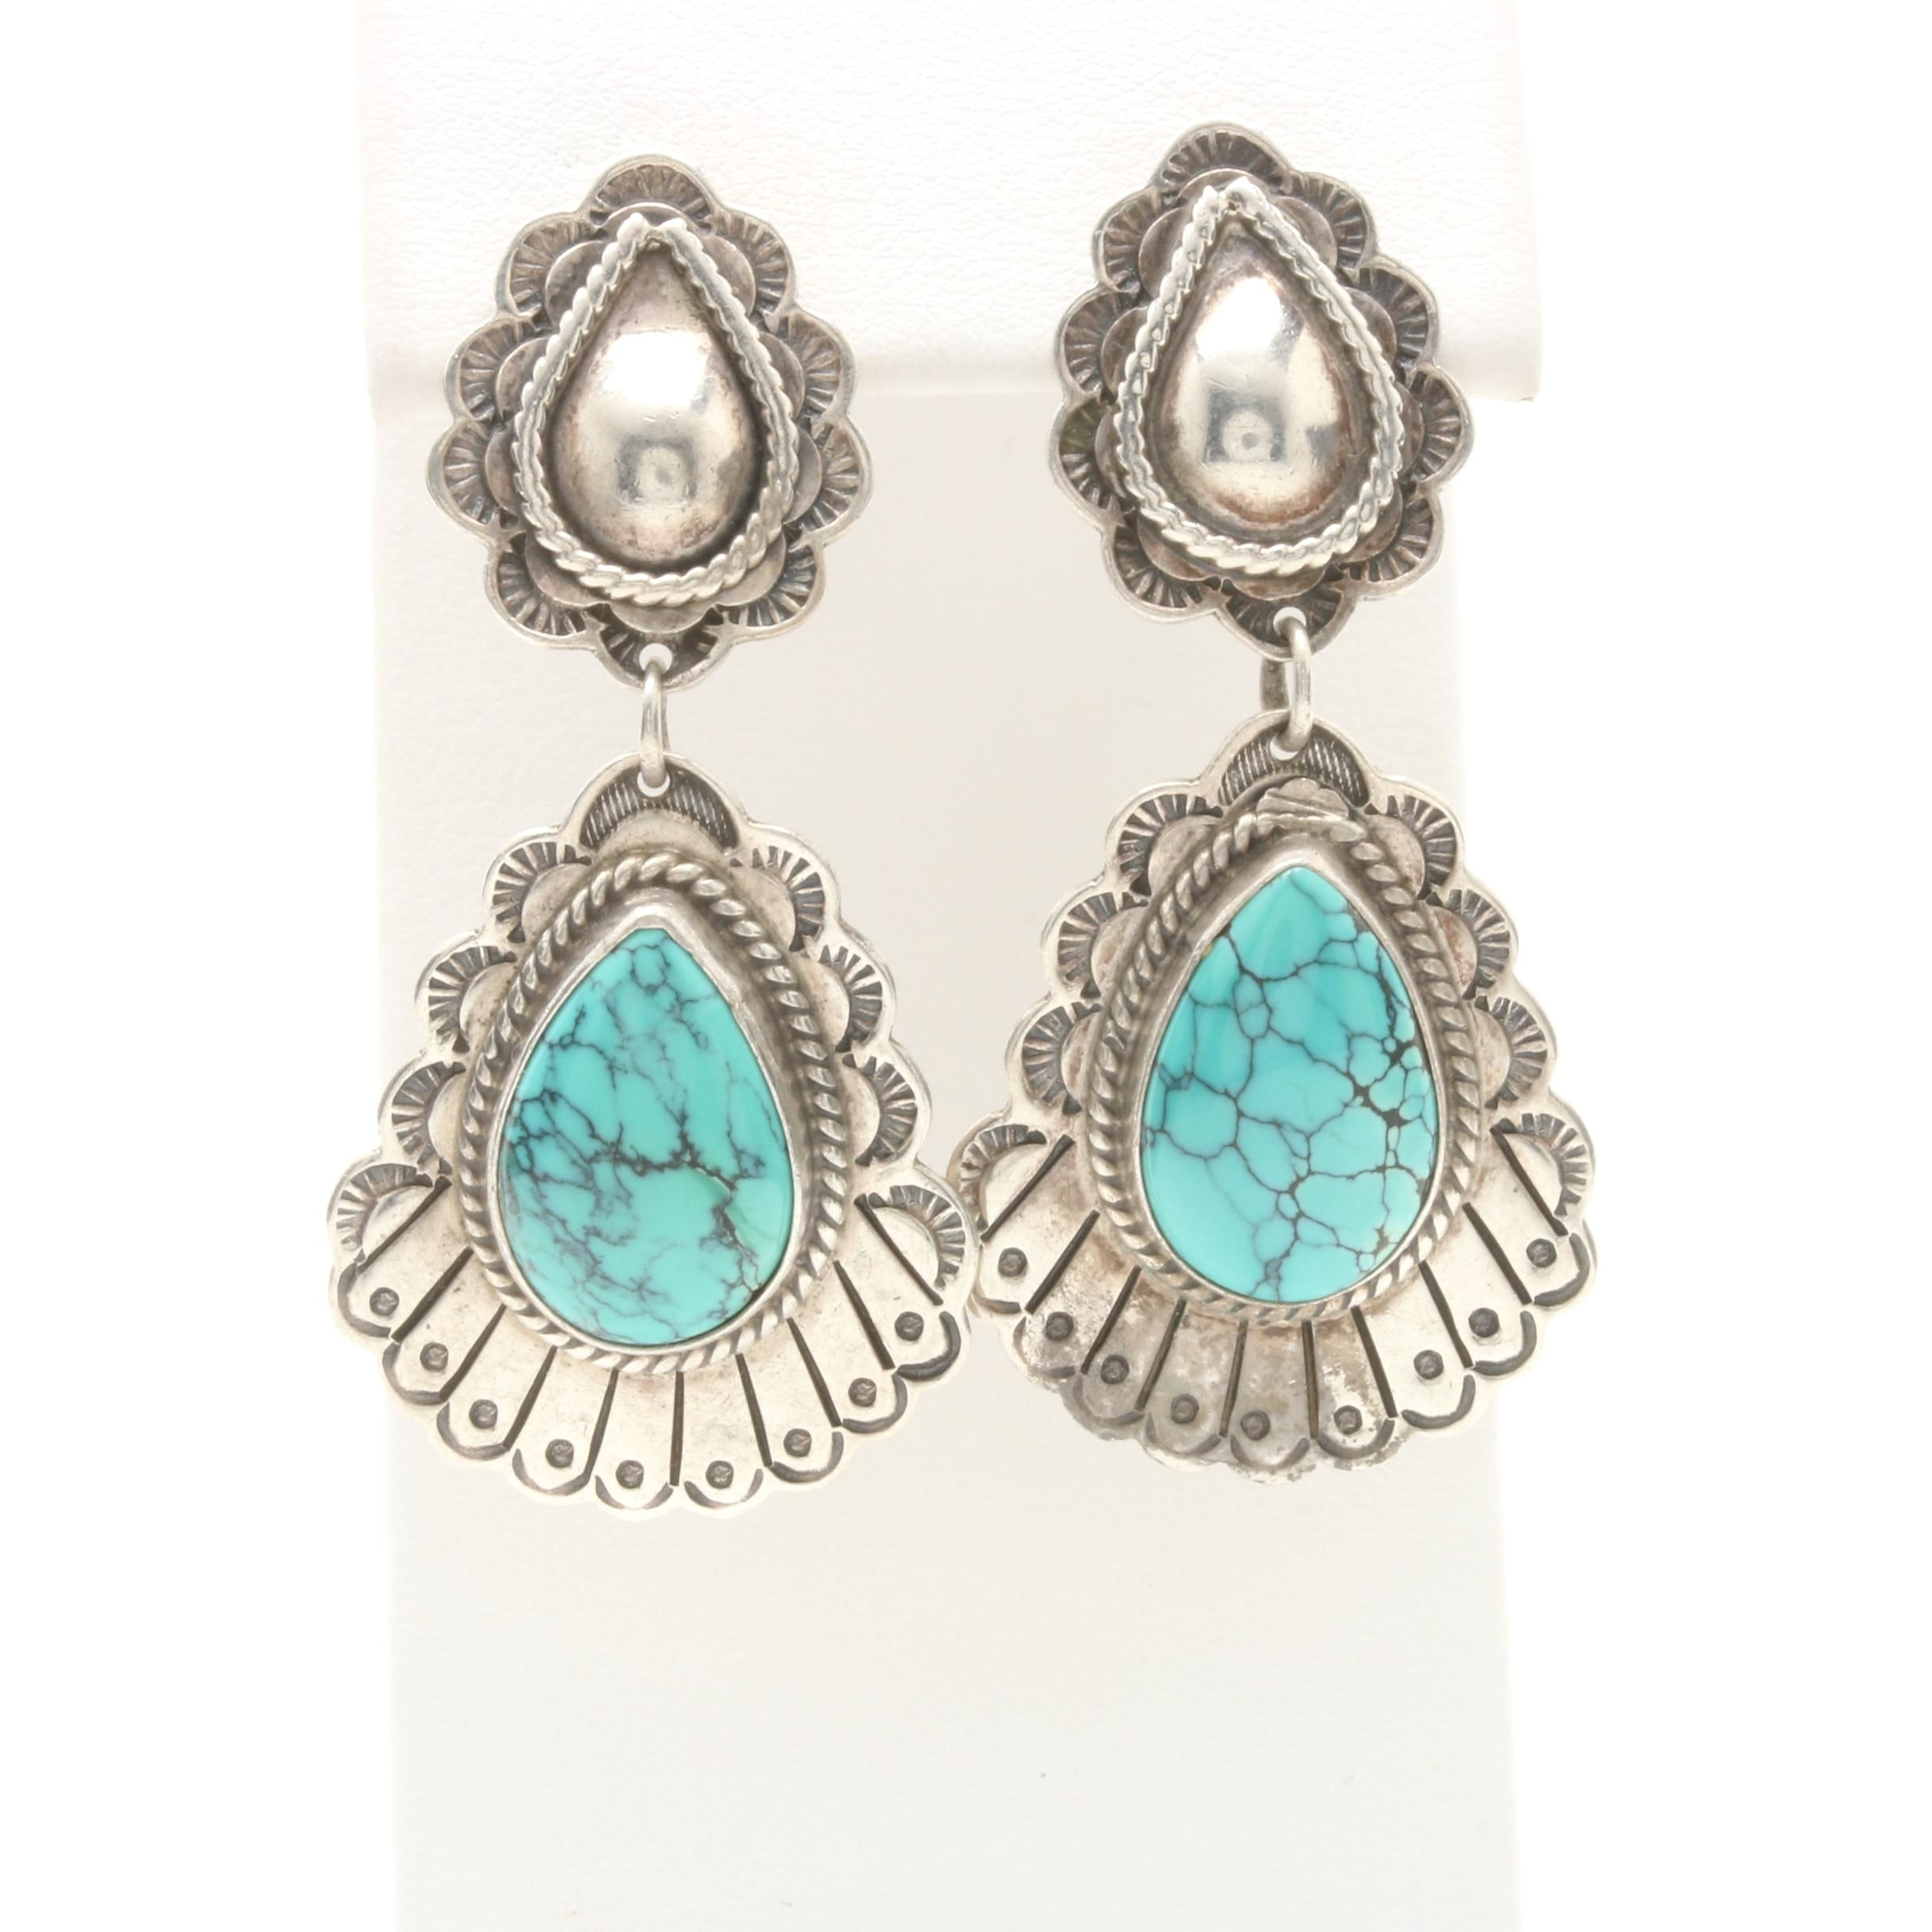 Joe Delgarito and Rudy Willie Navajo Diné Sterling Silver Turquoise Earrings